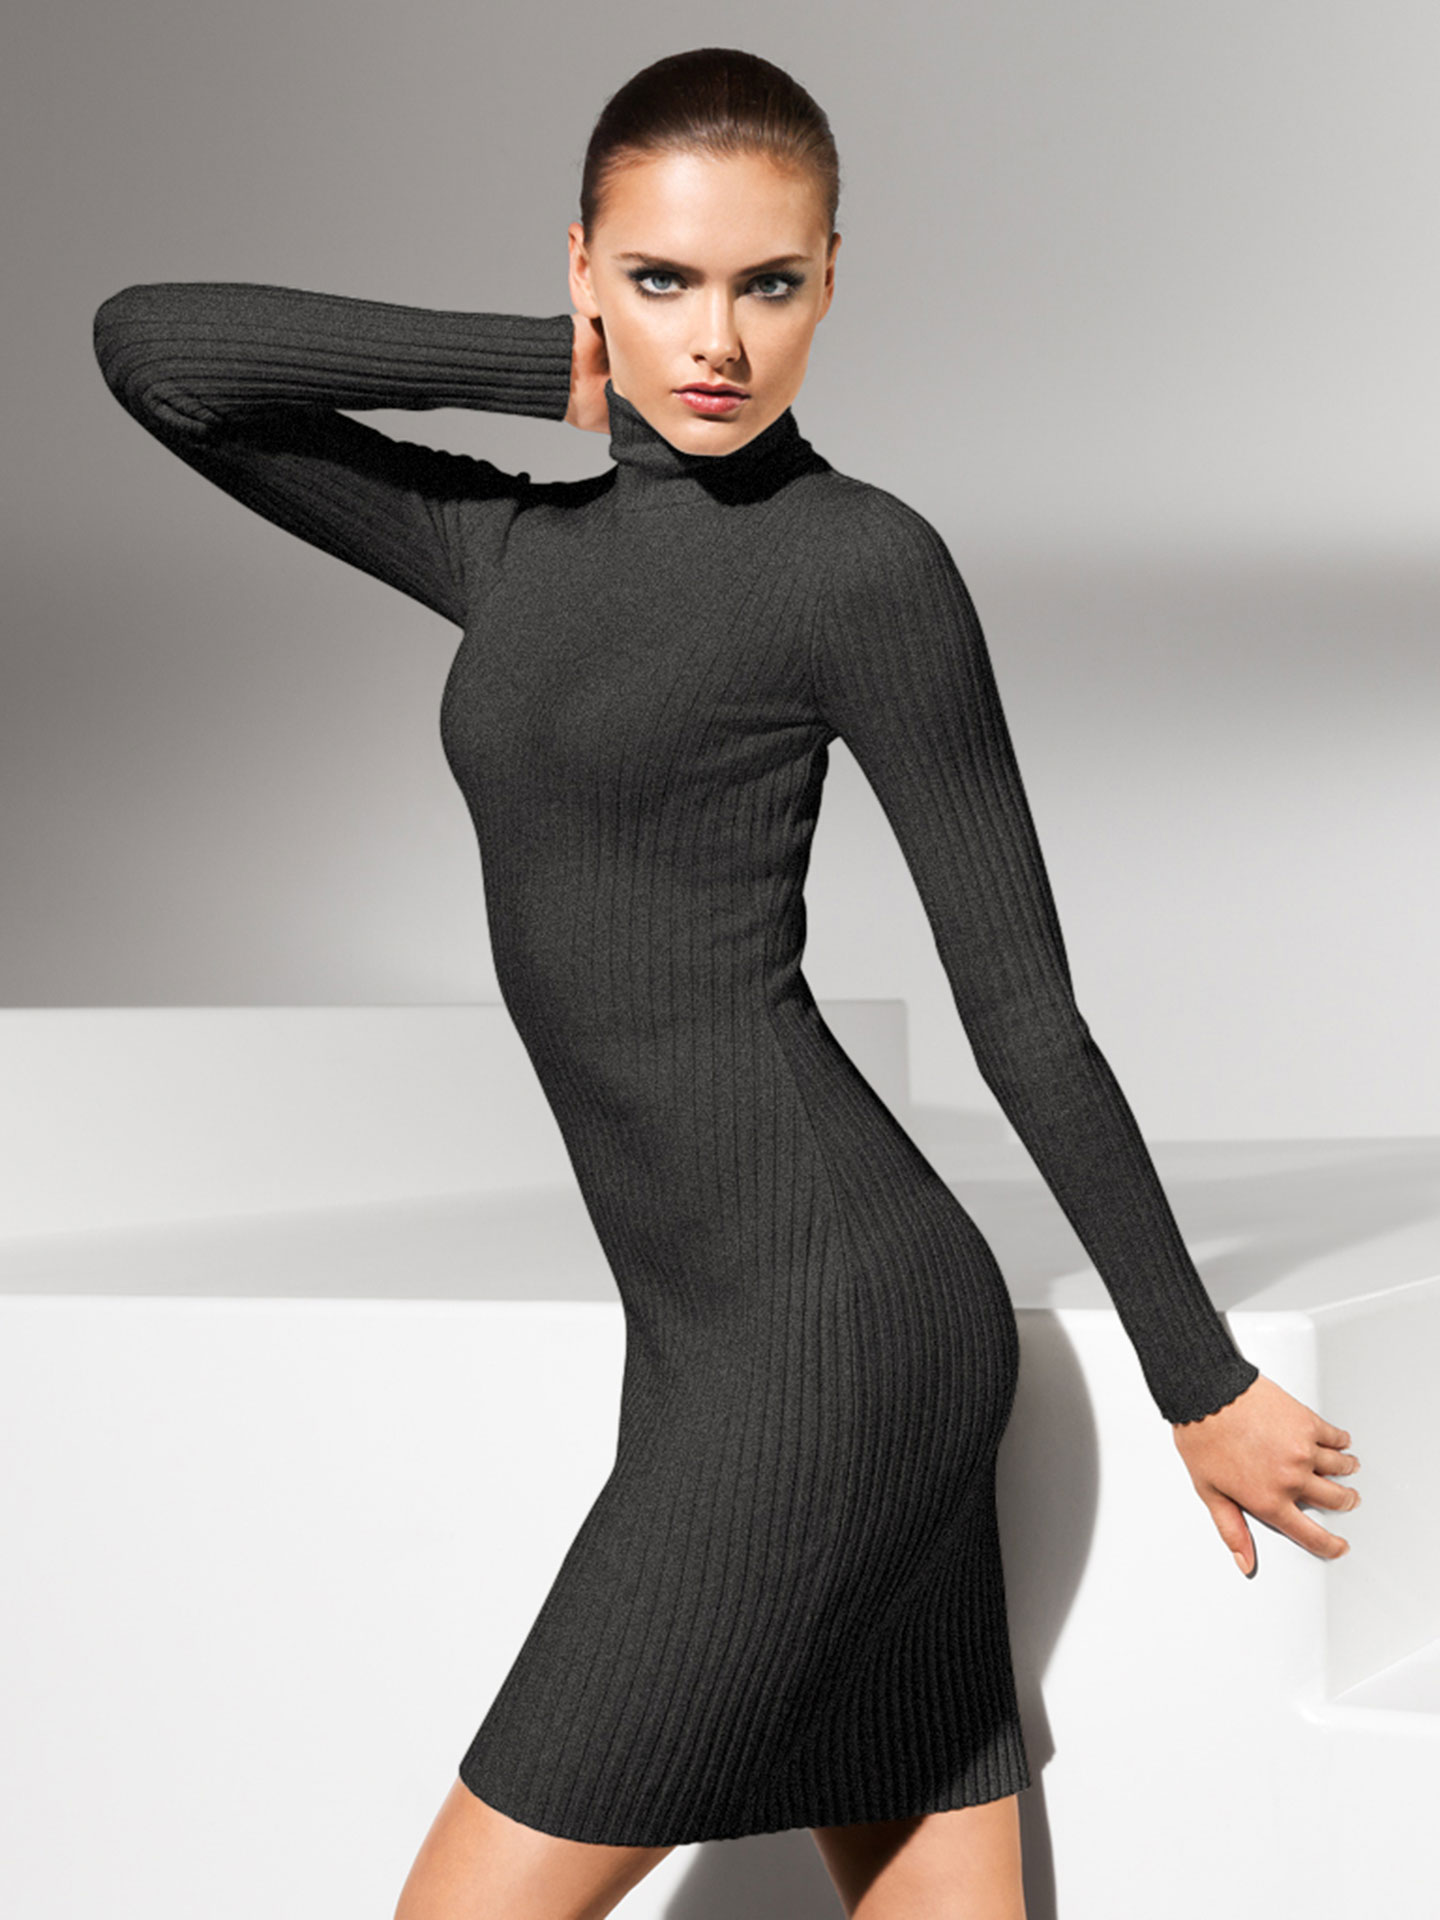 Kleider - Merino Rib Dress 8763 M  - Onlineshop Wolford